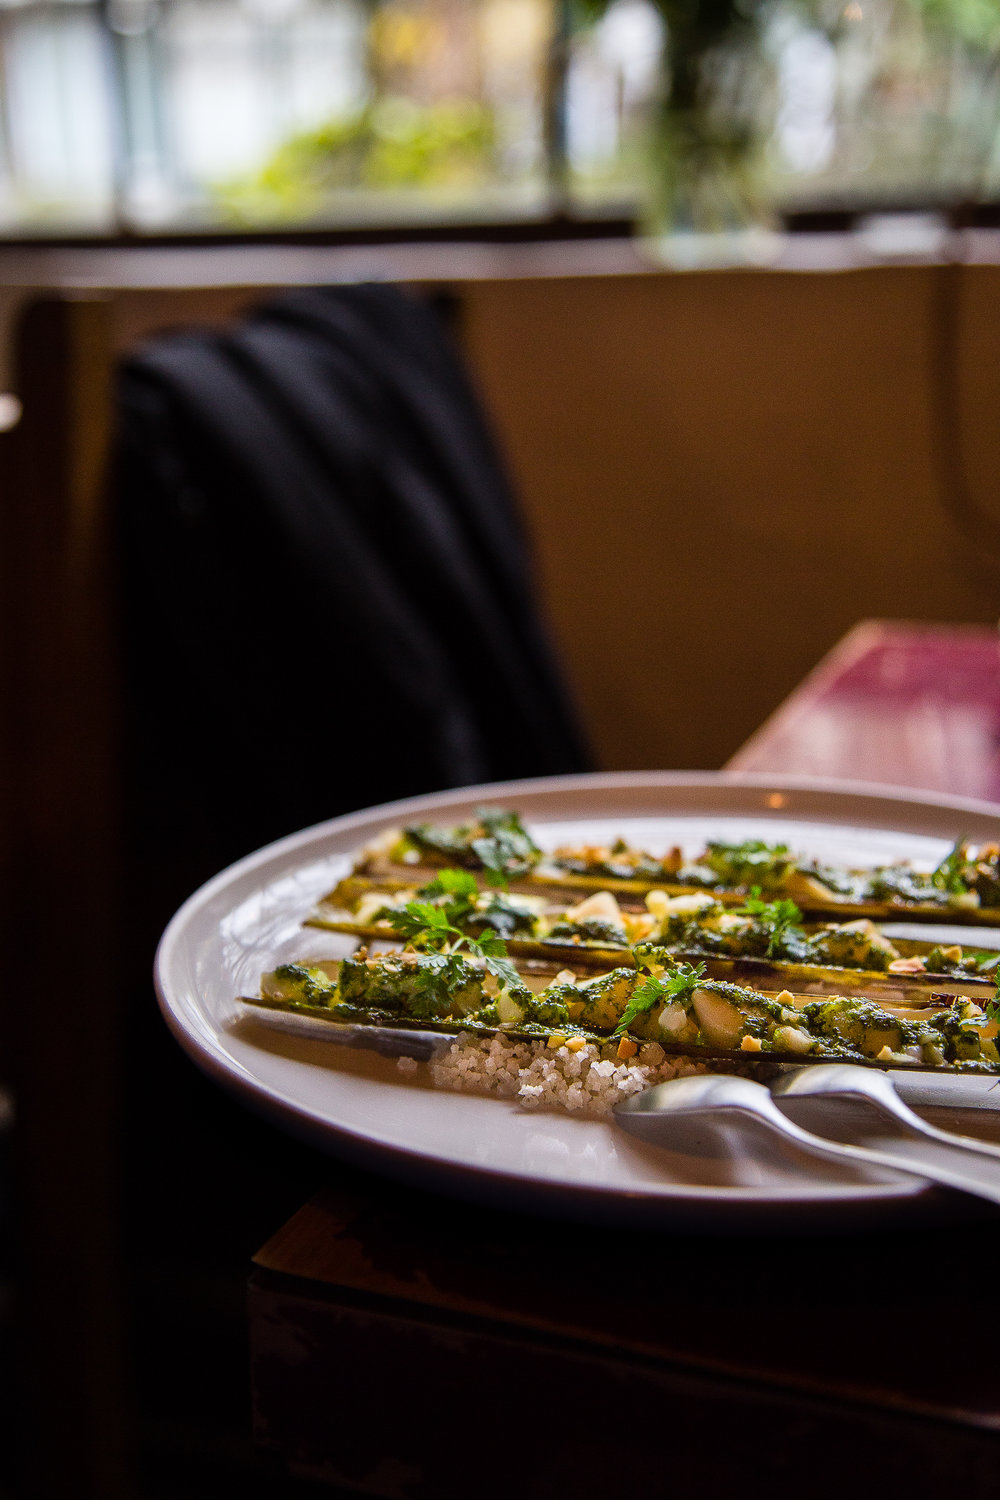 Razor Clams with Garlicky Herb Butter